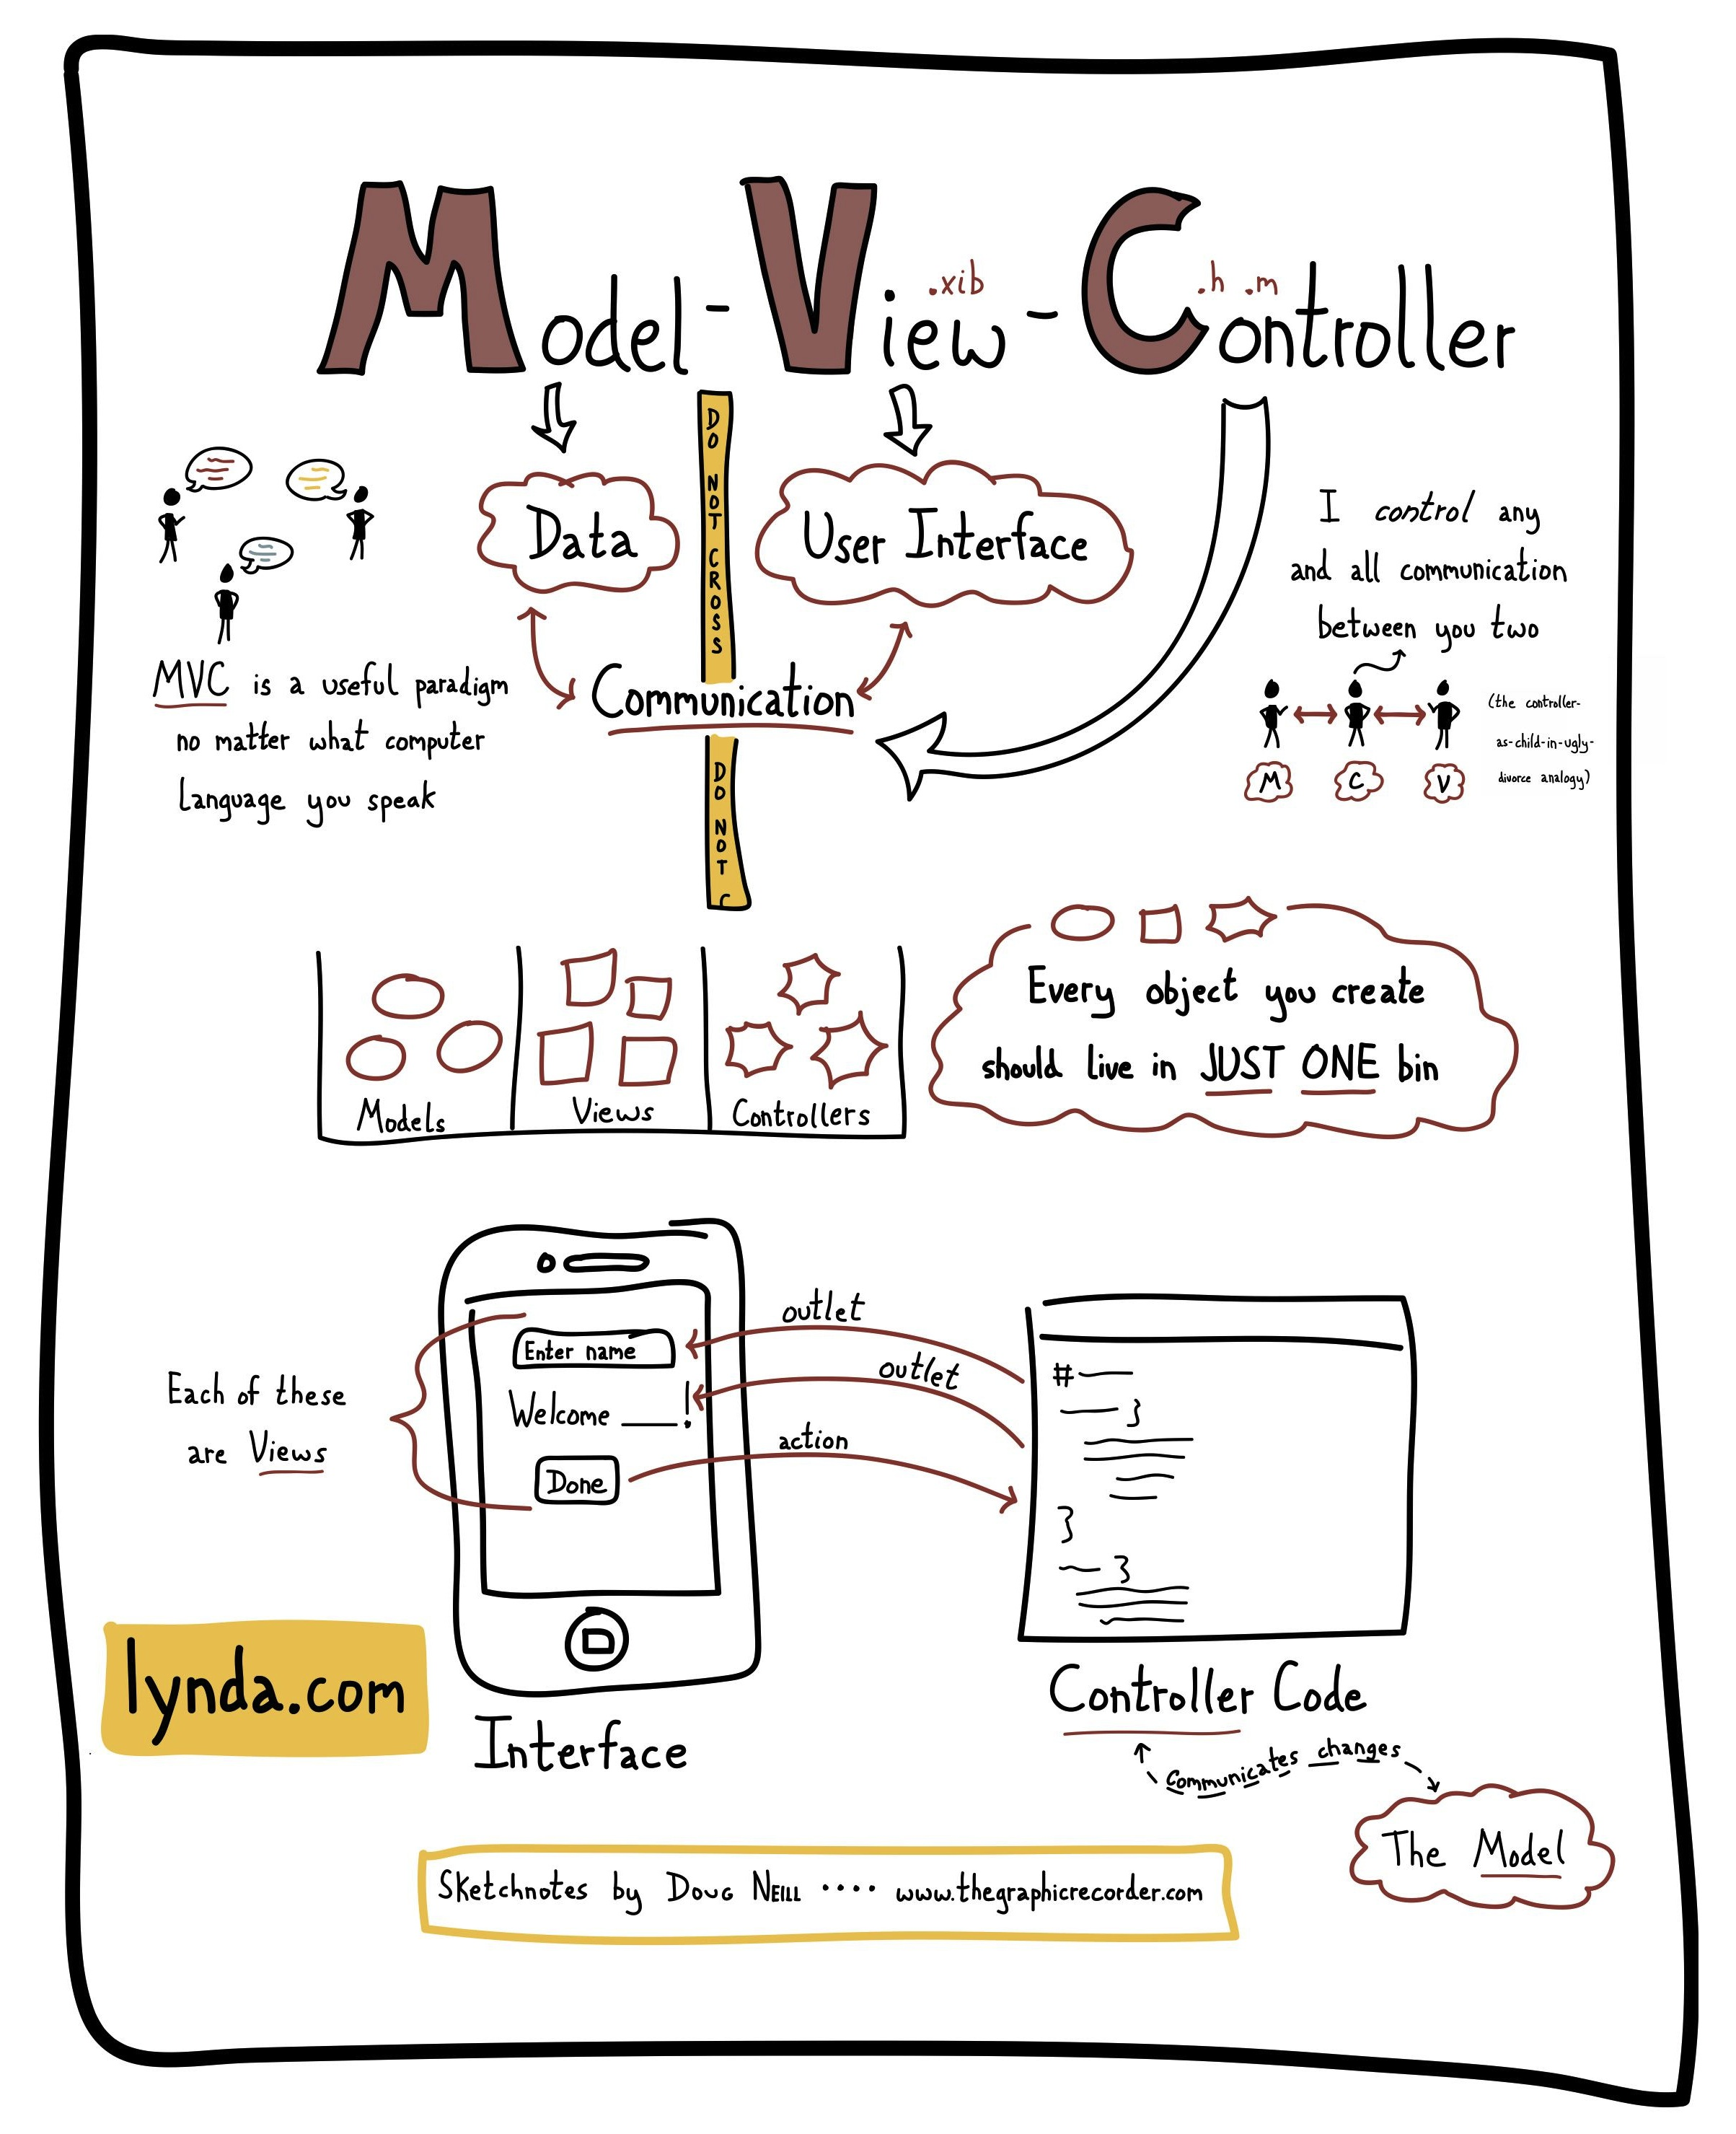 The Graphic Recorder - Doug Neill Sketchnotes - Lynda.com - model-view-controller paradigm - ios sdk